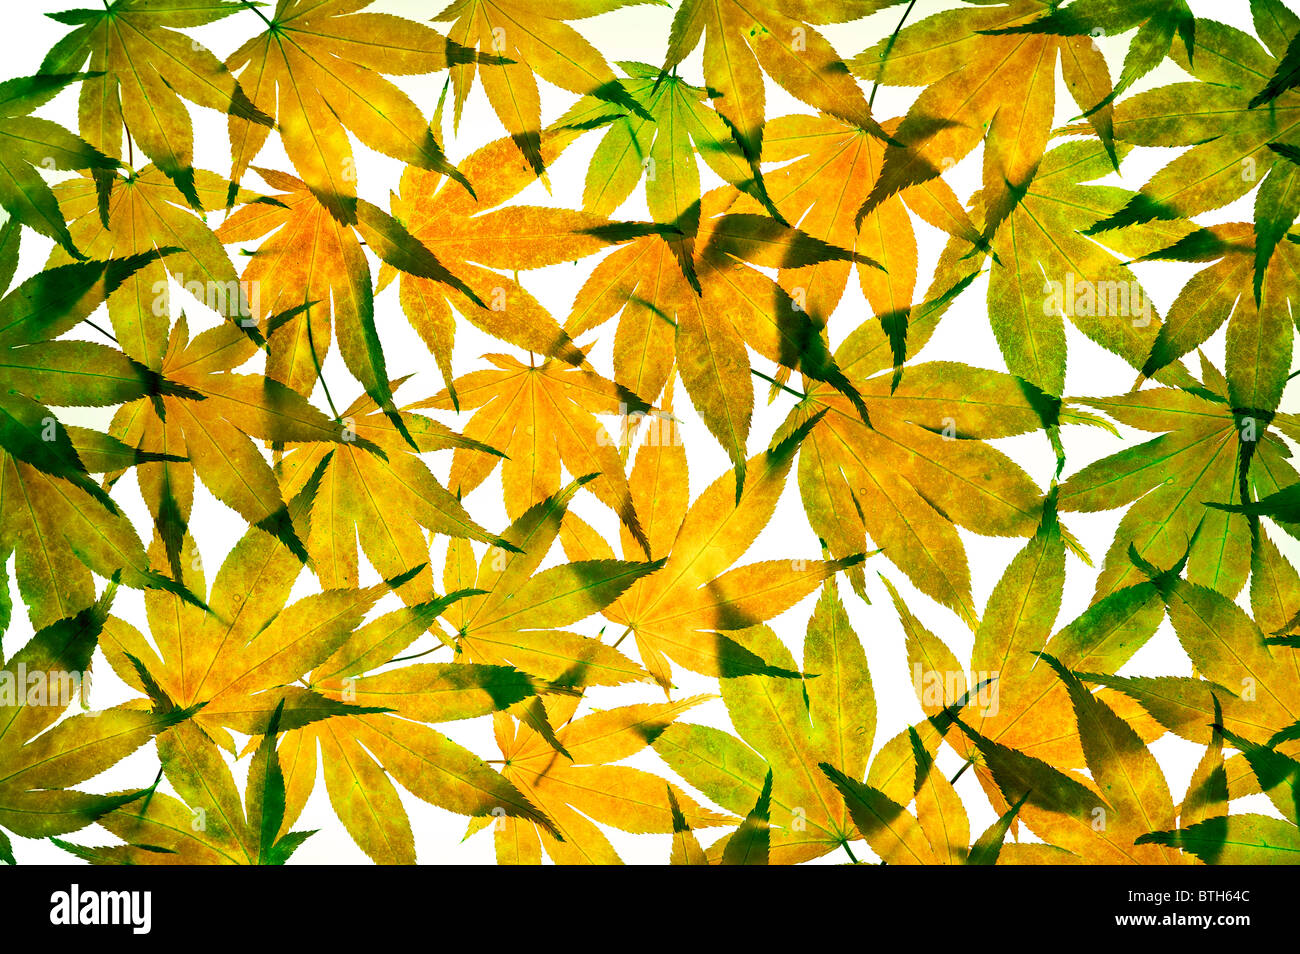 Autumn acer leaves arranged on a white background - Stock Image